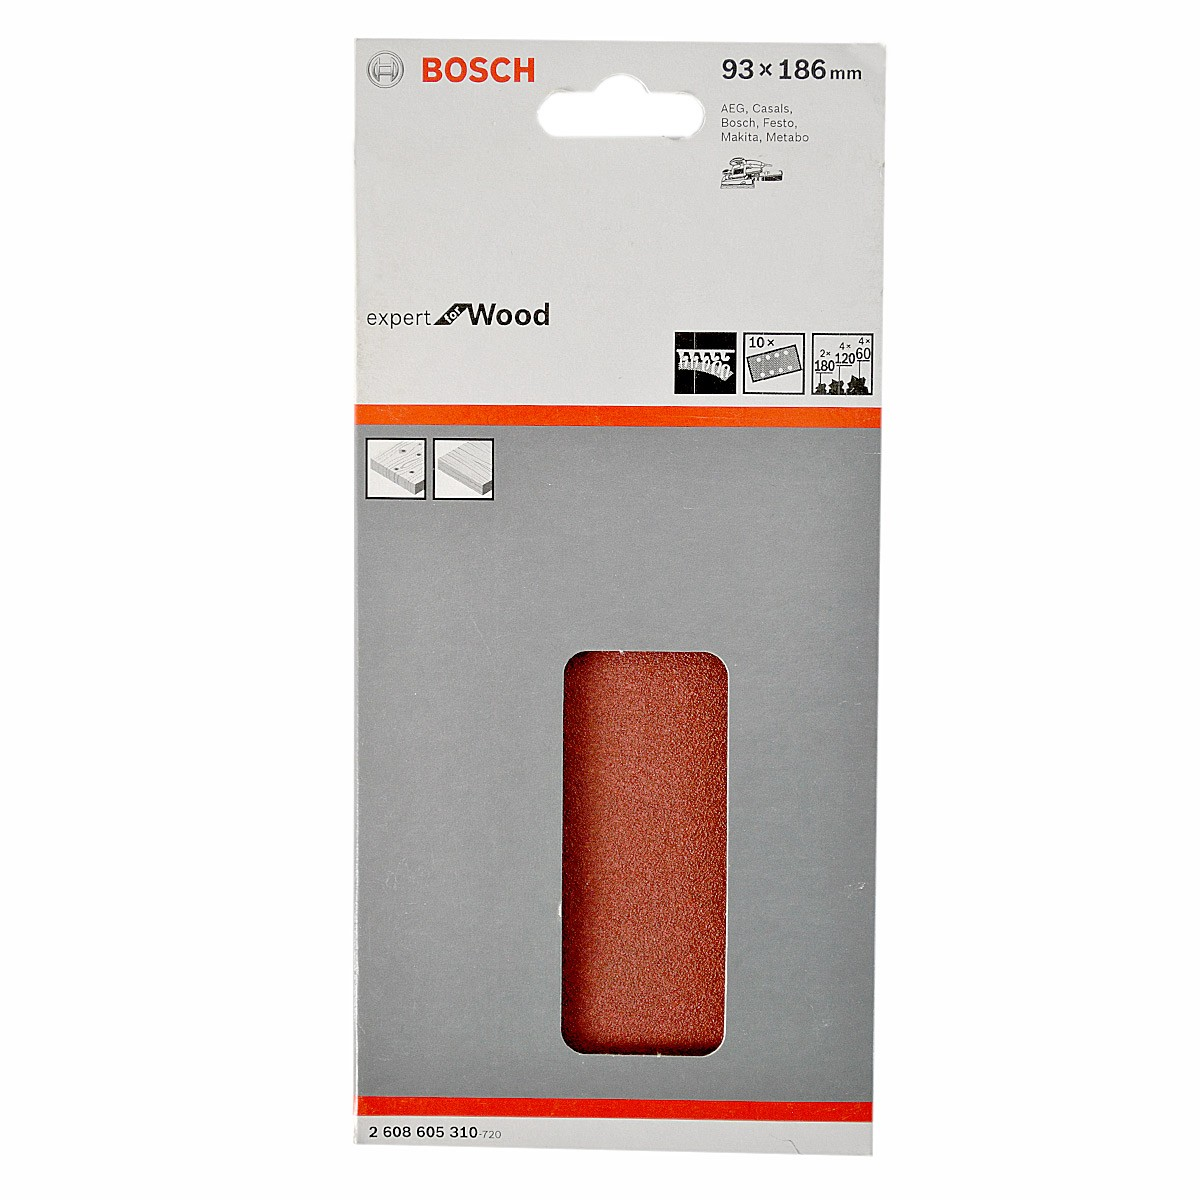 Bosch Assorted Sanding Sheets for Orbital Sanders for Wood 93 x 186mm x10 Pcs 2608605310